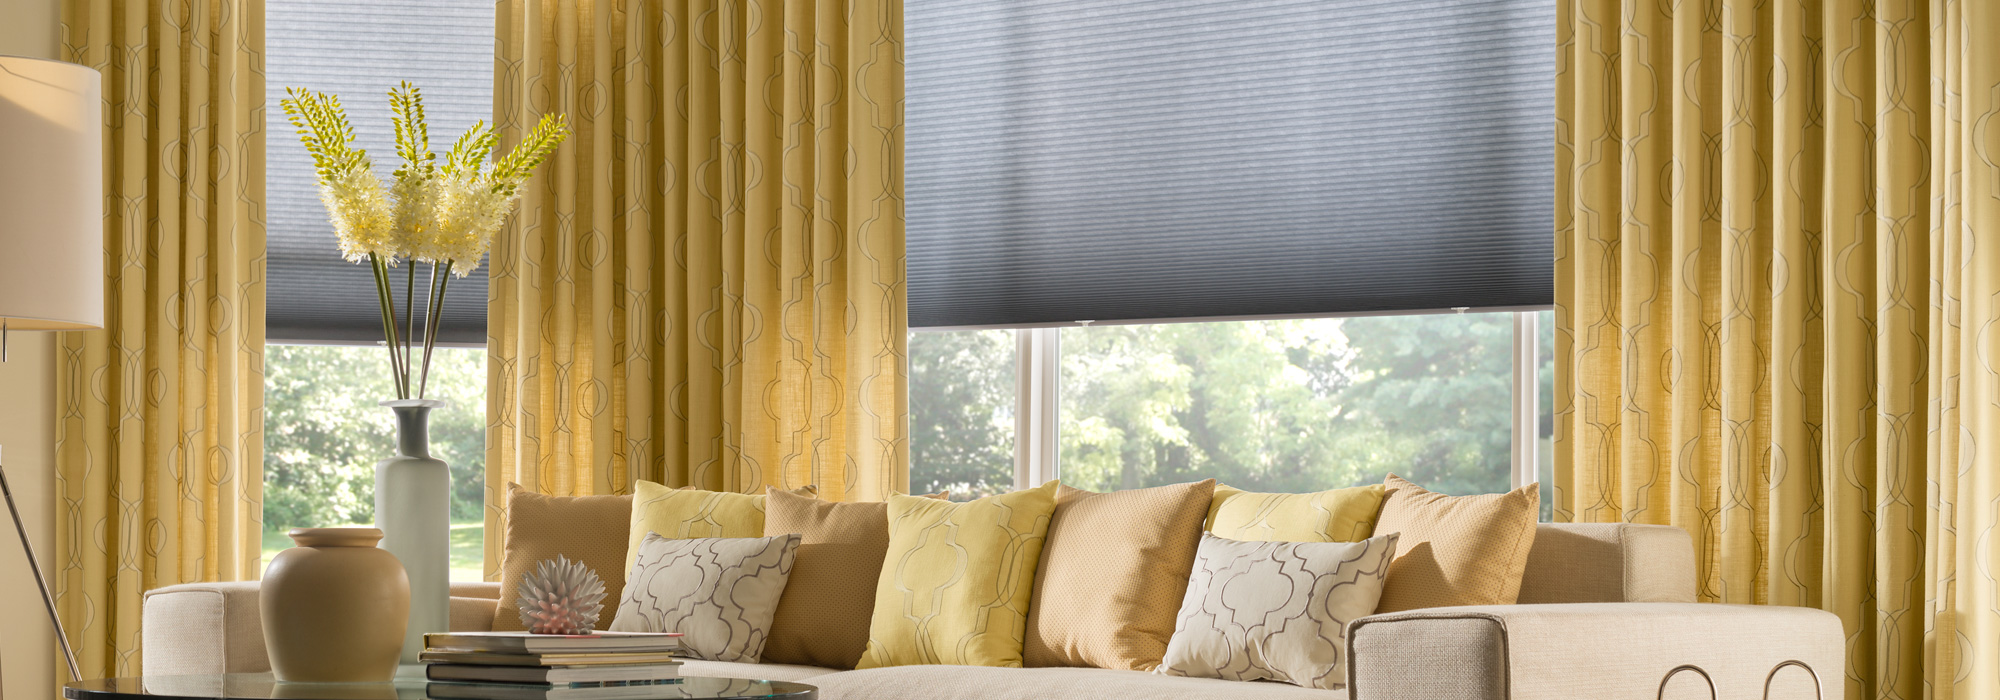 Glass Window With Bali Blinds And Yellow Curtains Plus Sofa Set For Living  Room Decor Ideas